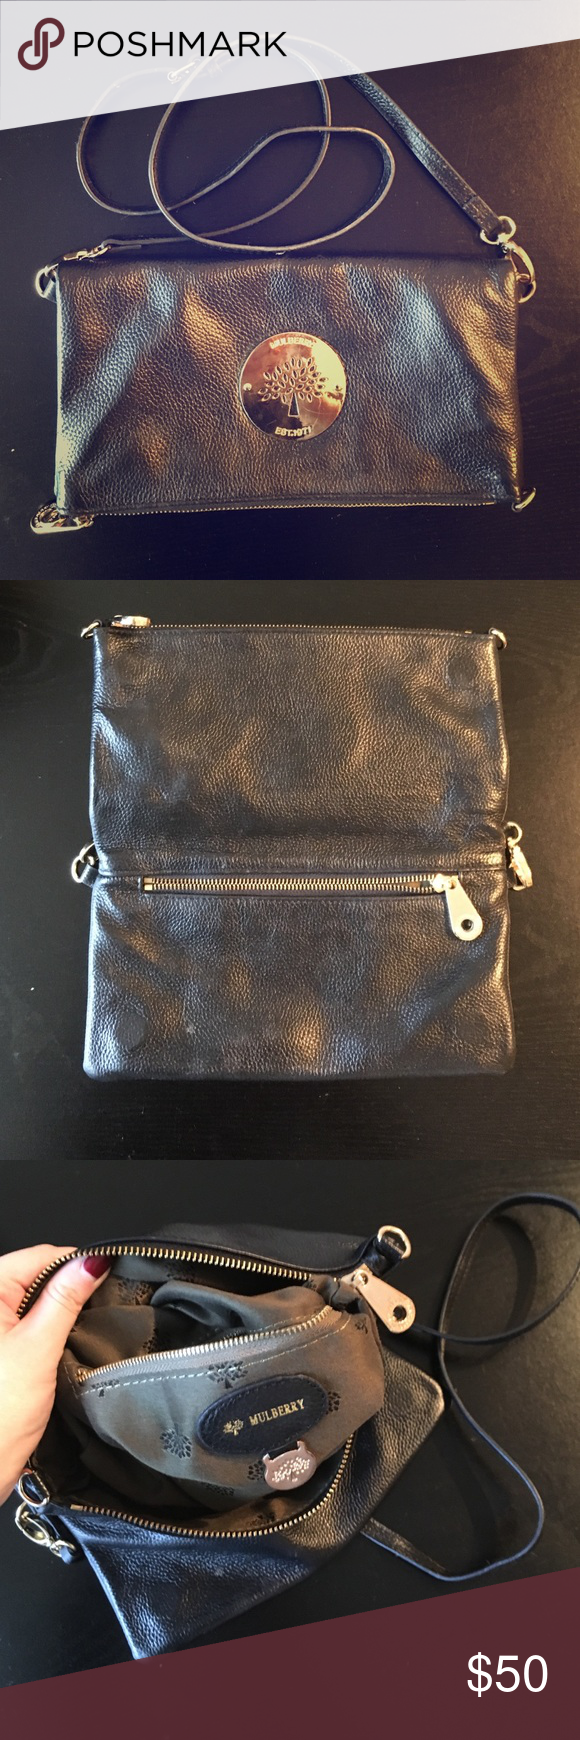 ... free shipping a mulberry black leather zippy bag with gold hardware and  inside pockets for smaller ... 255ca9ab71